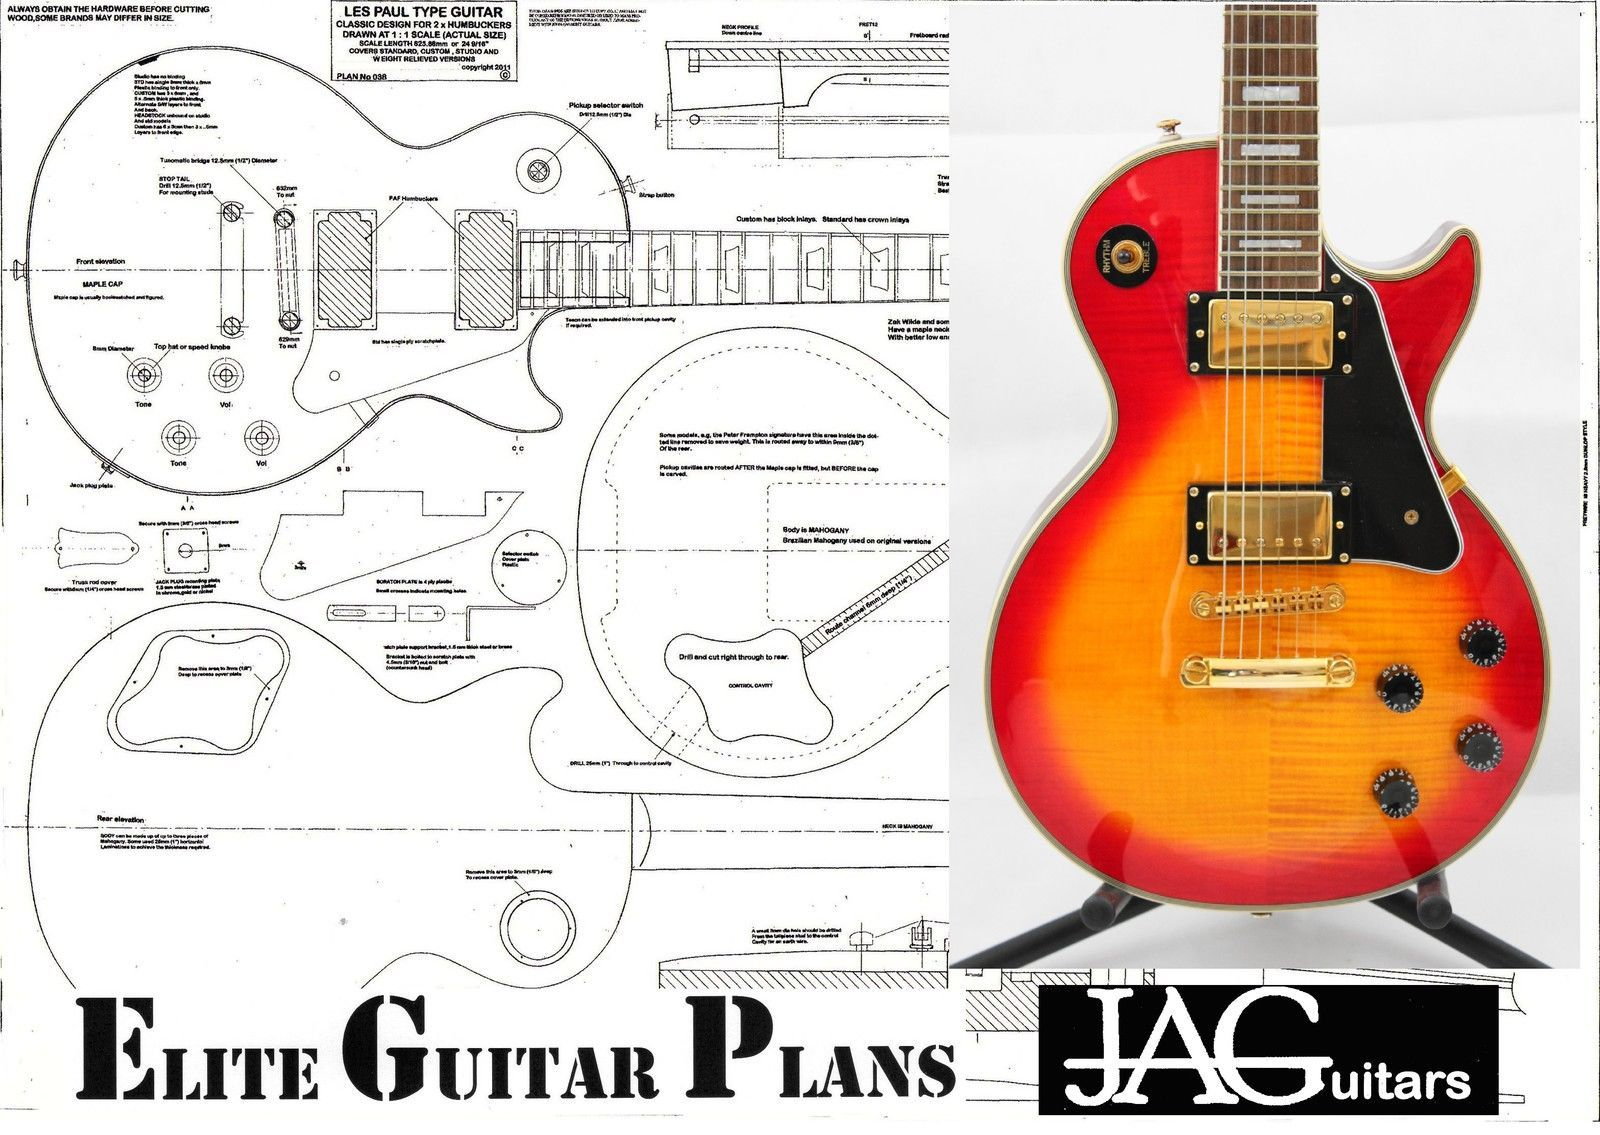 luthiers project plan drawing for gibson les paul guitar p038 plan drawing gibson les paul. Black Bedroom Furniture Sets. Home Design Ideas